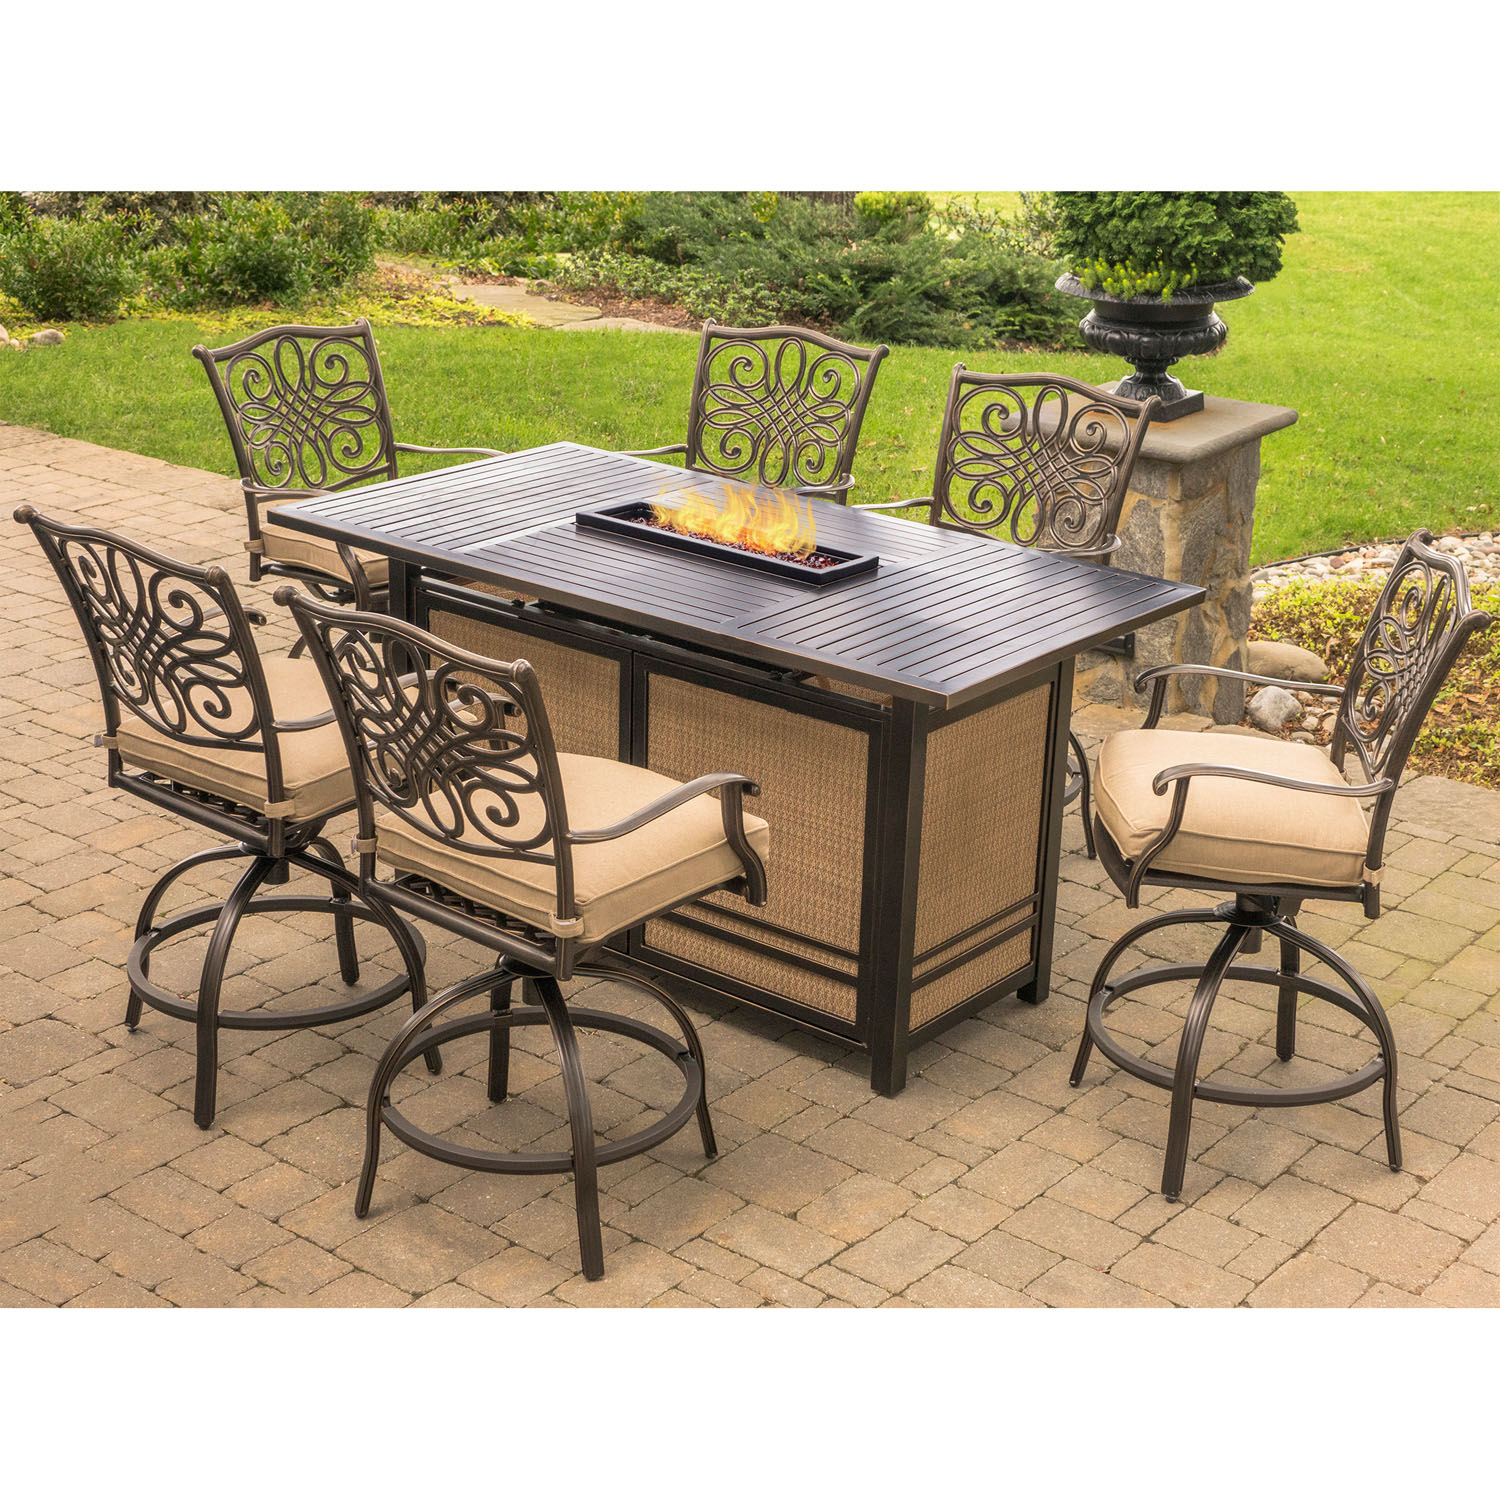 set awesome finish fresh images beautiful powder coat patio of black frames lightweight steel aluminum table furniture with high top durable coated